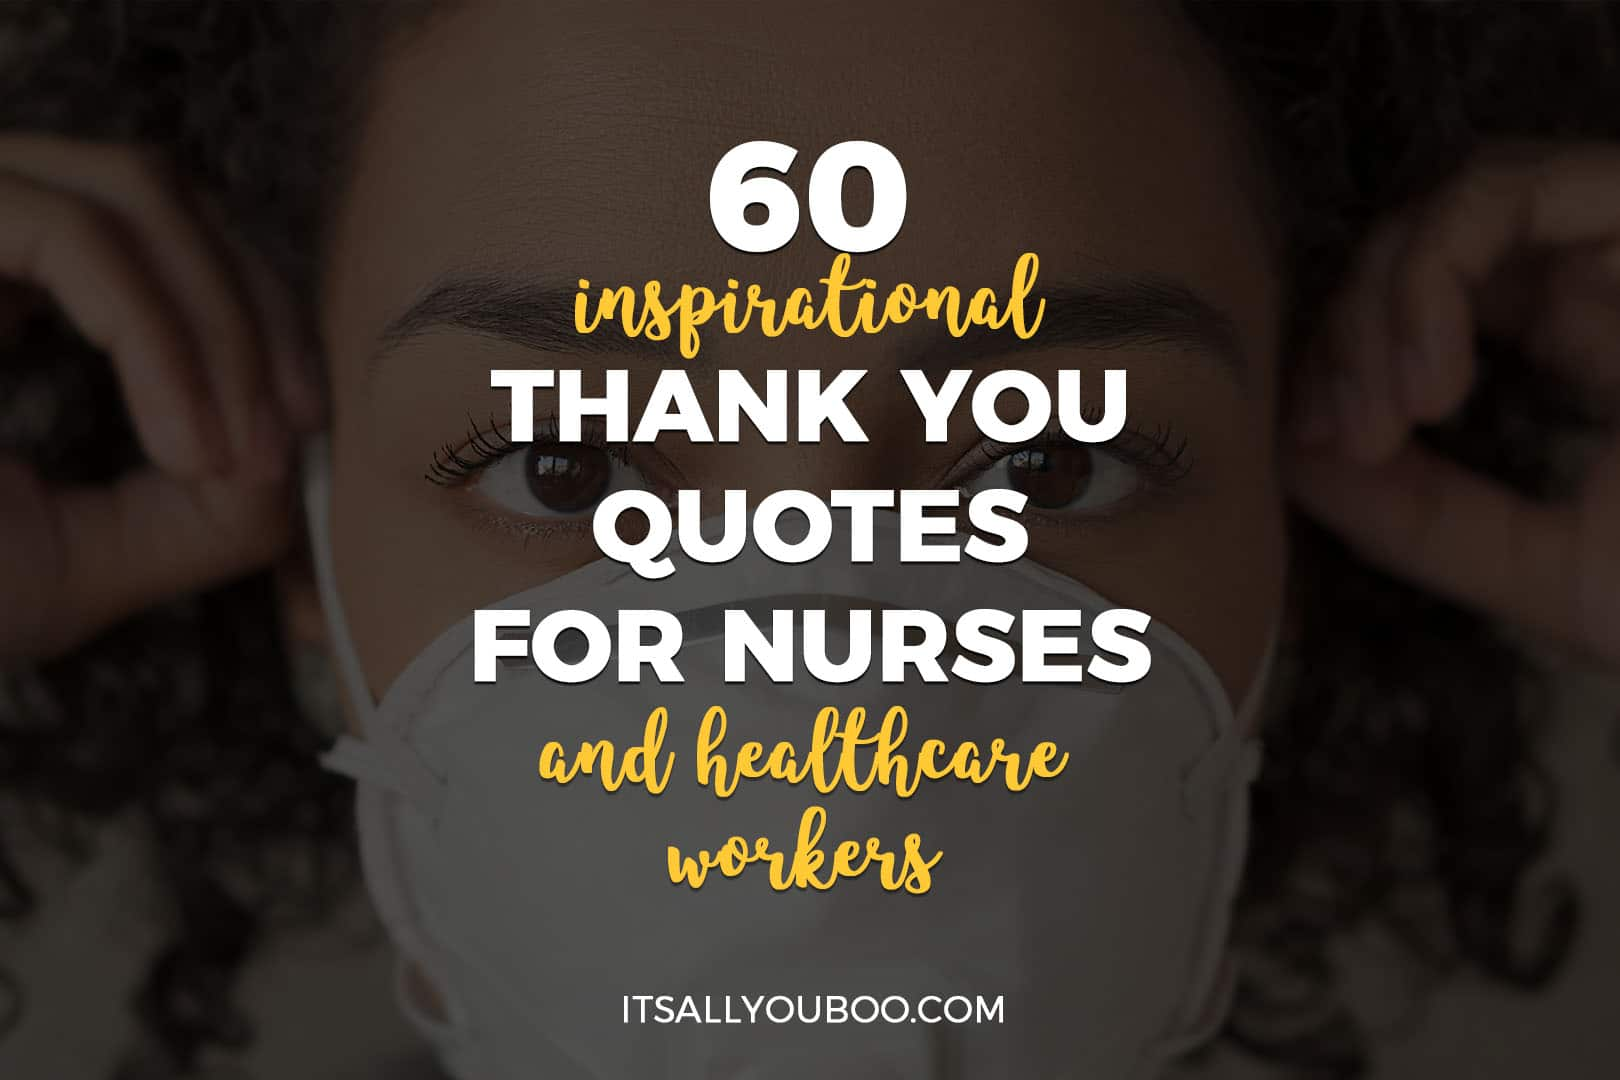 60 Inspirational Thank You Quotes for Nurses and Healthcare Workers